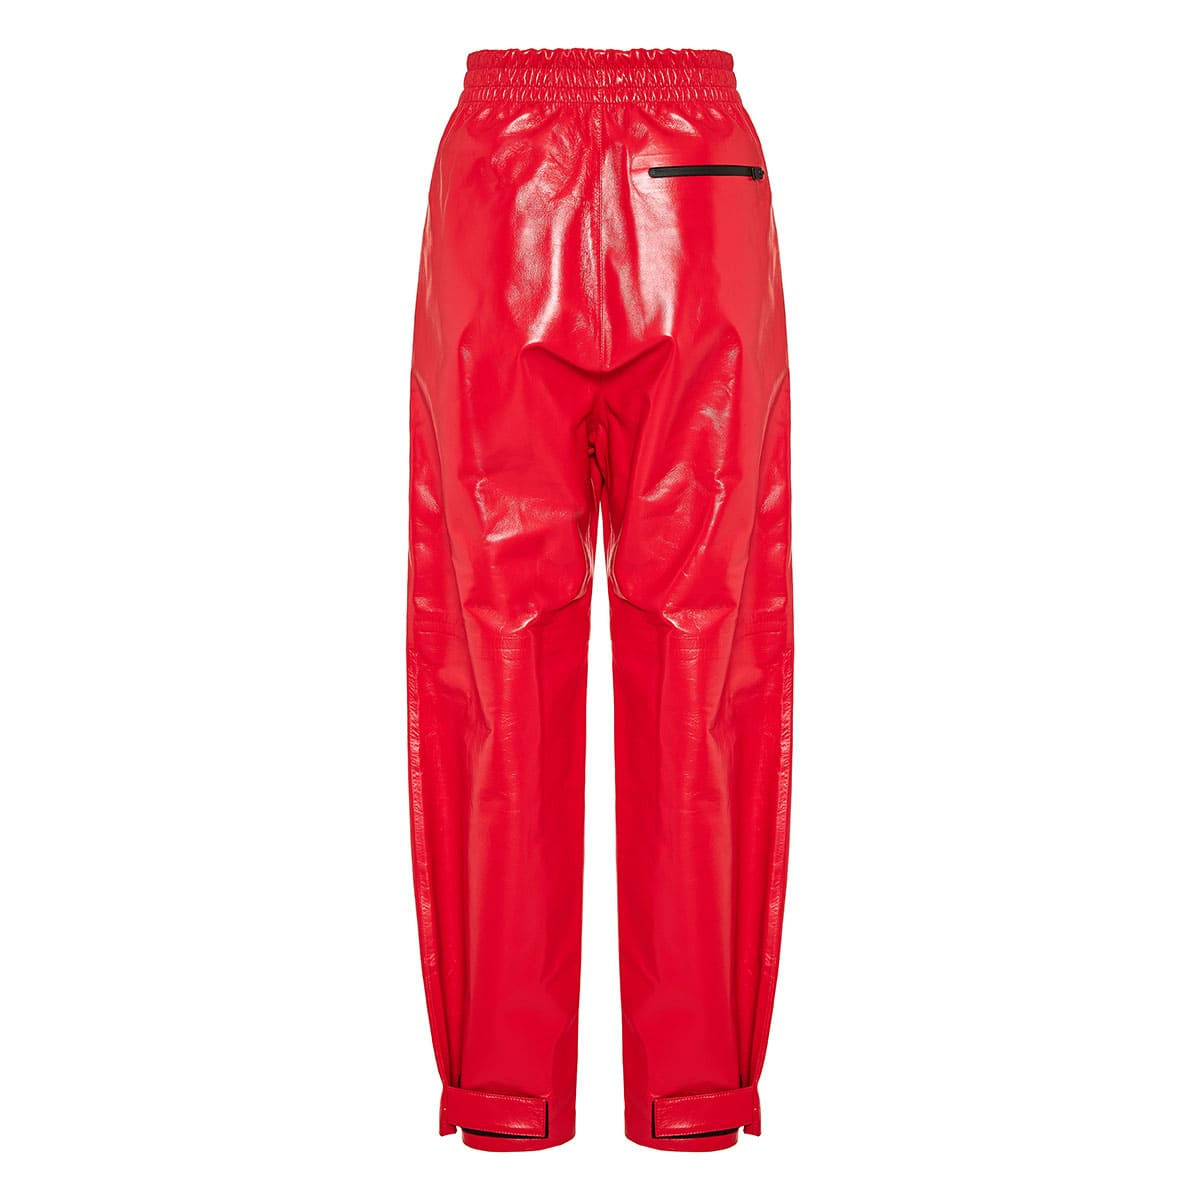 Loose leather trousers